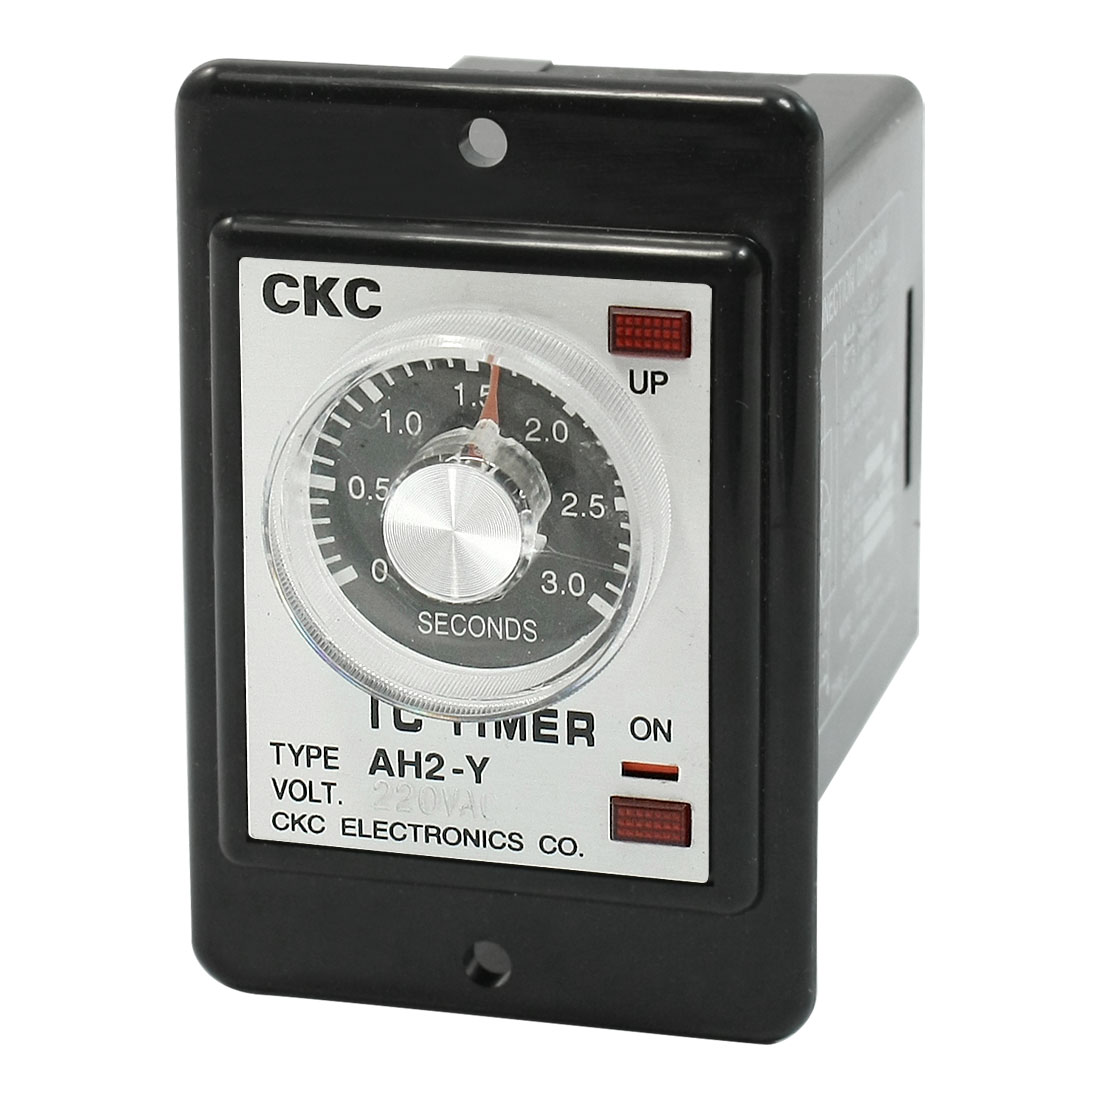 Ah2-Y Power On Ac 220V 0-3S Seconds Dpdt Delay Time Relay Timer